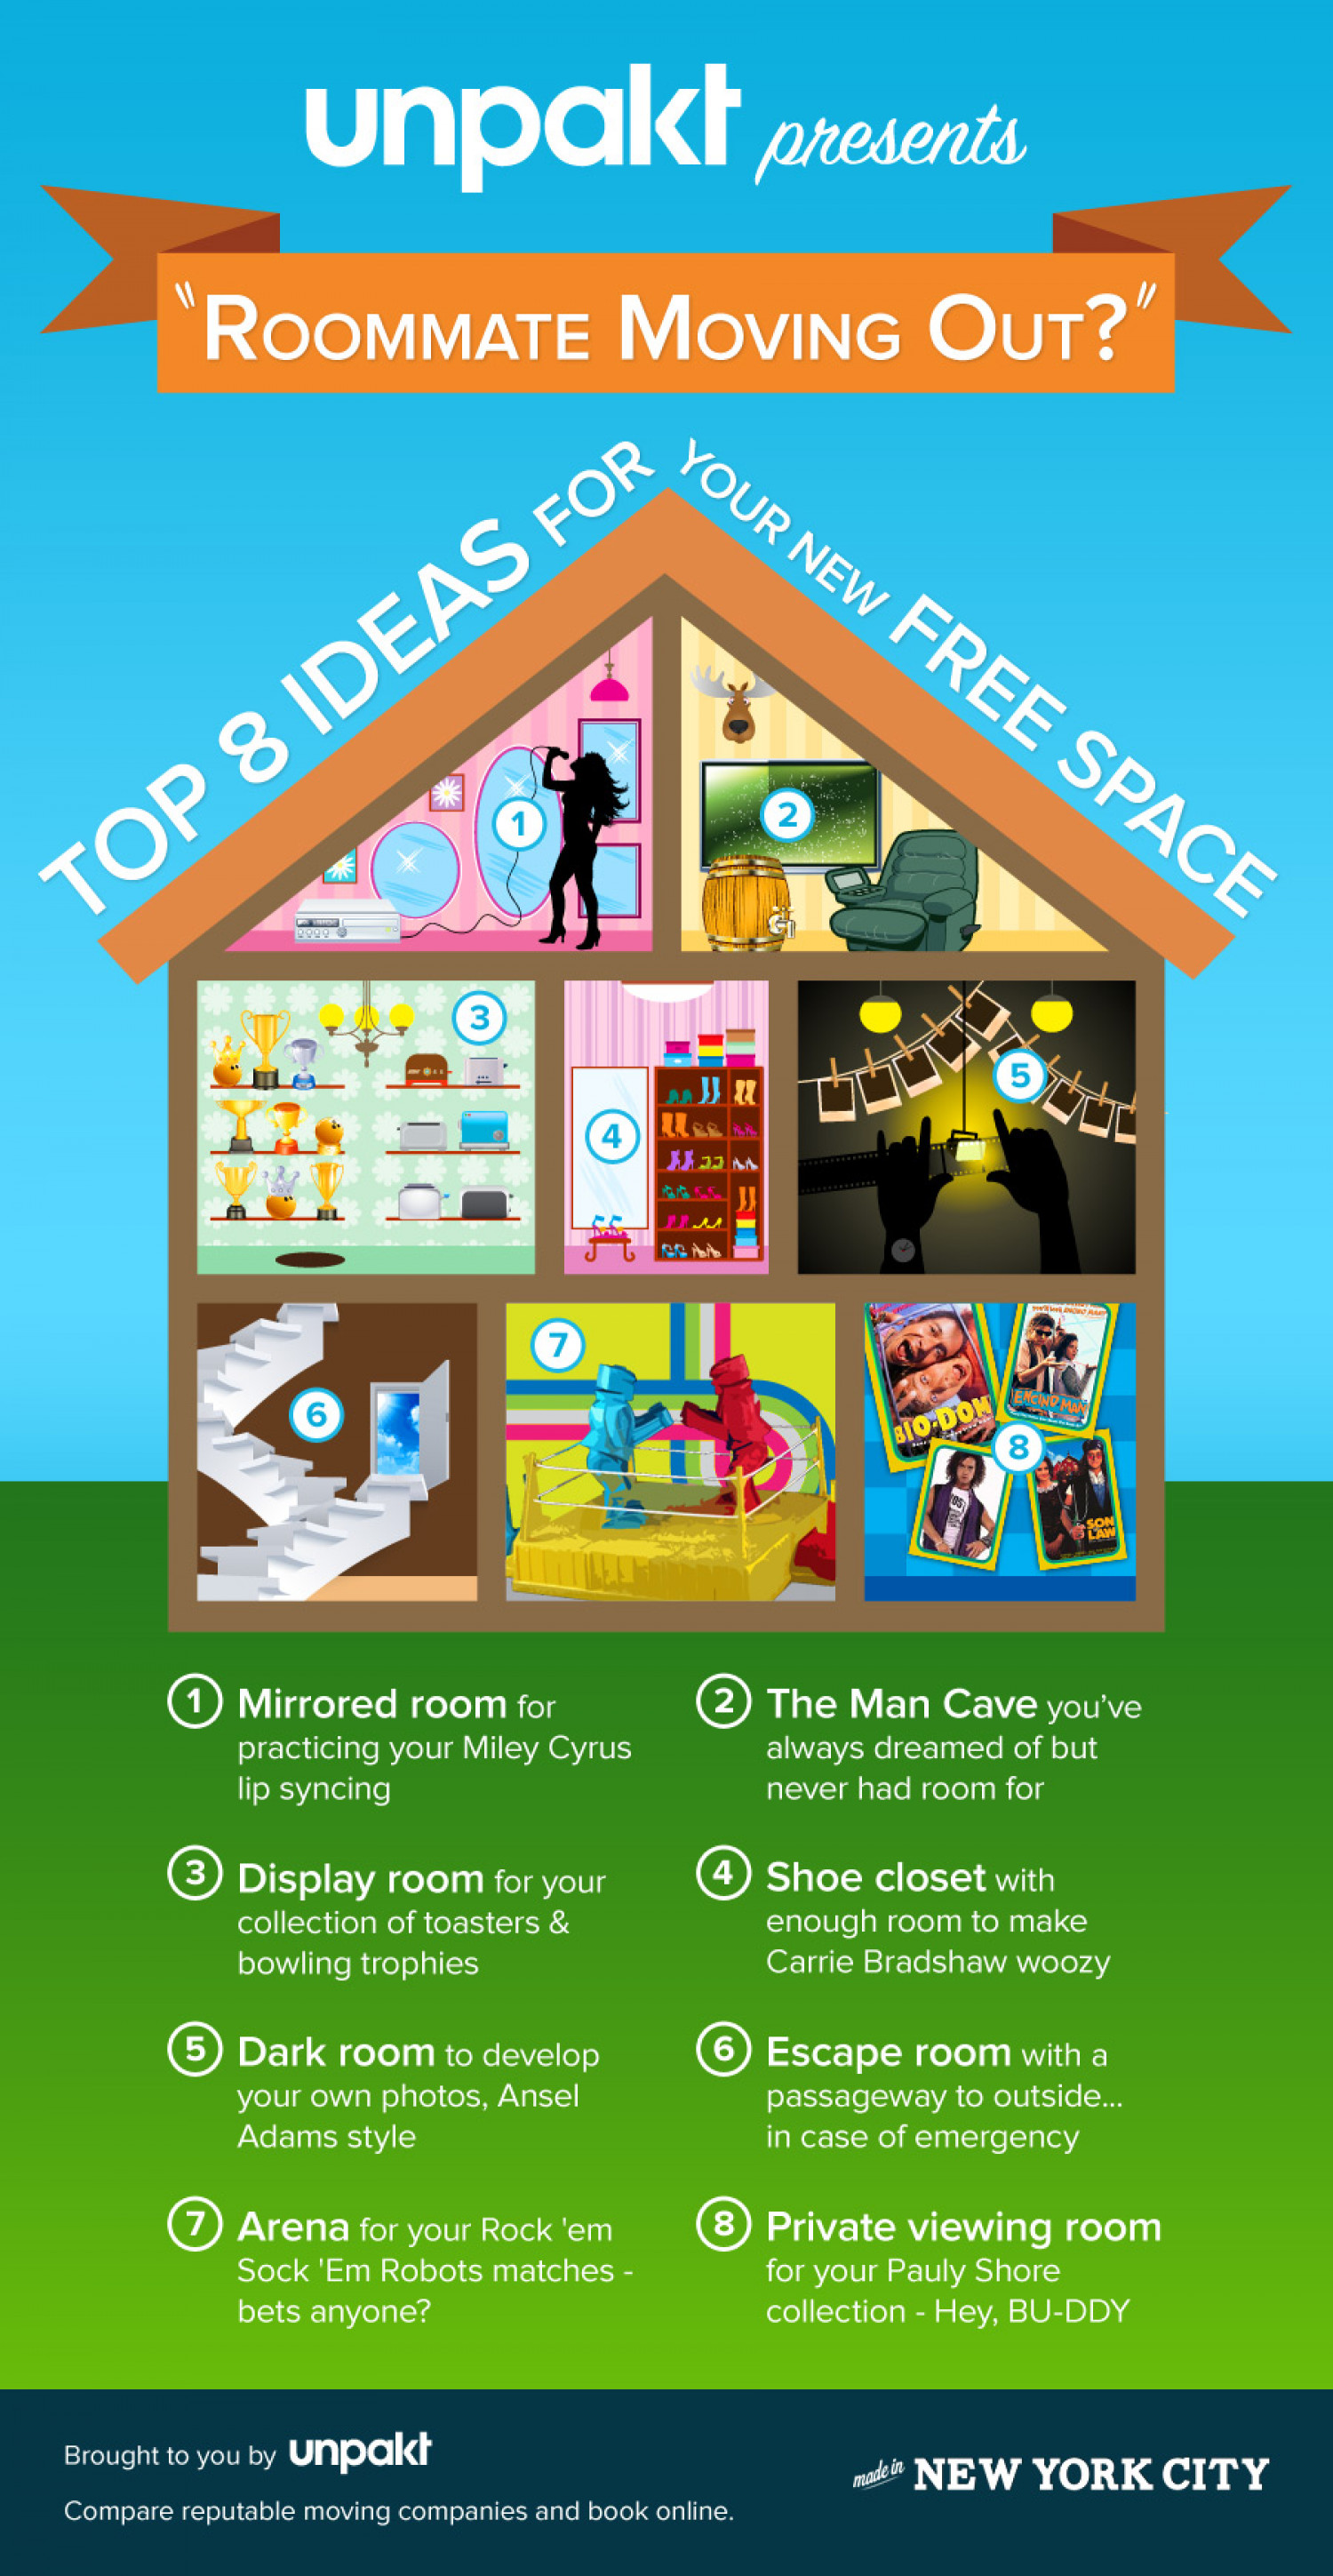 Roommate Moving Out? Top 8 Ideas for Your New Free Space Infographic